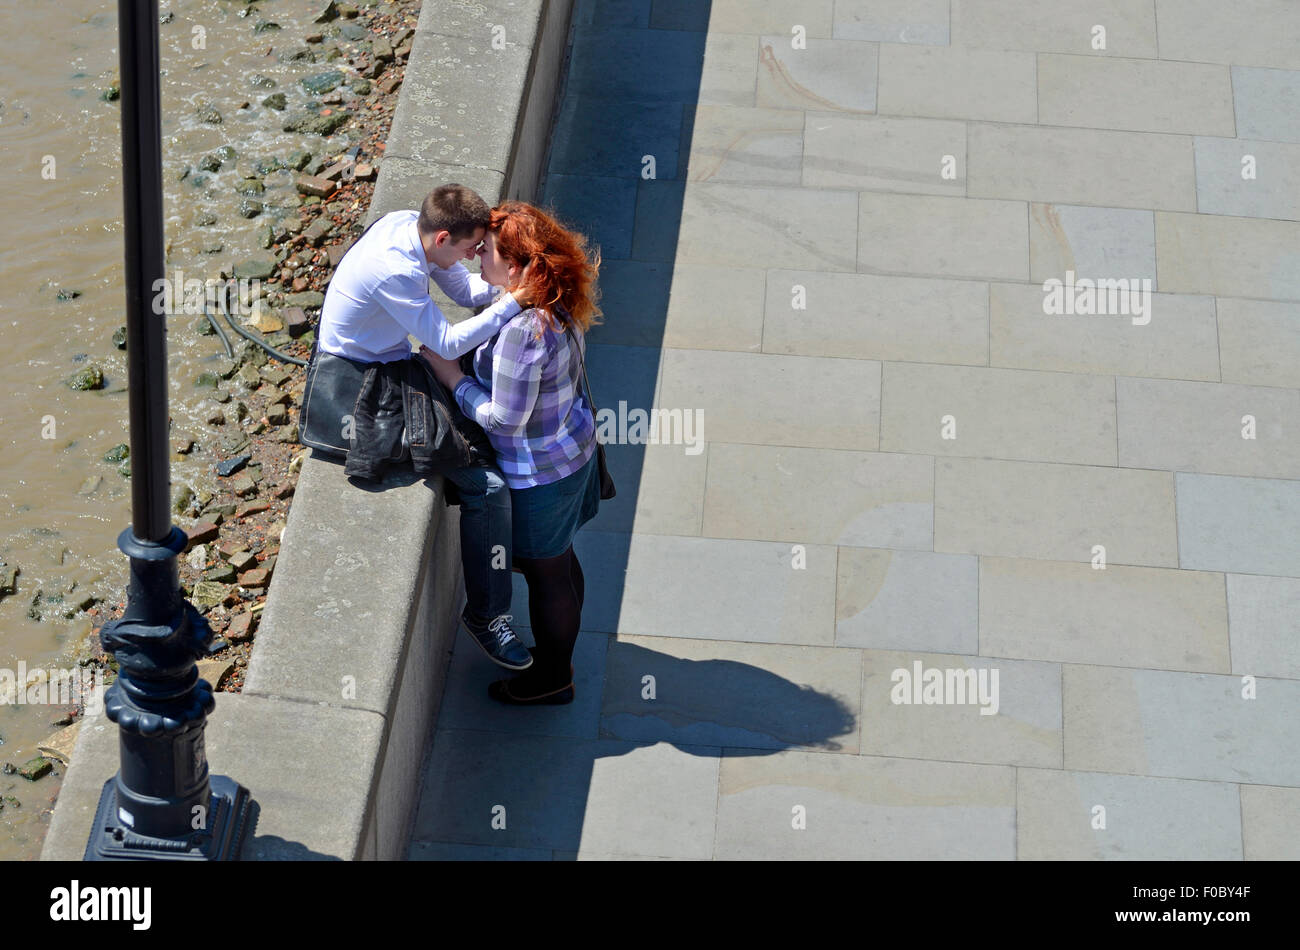 London, England, UK. Young couple by the river Thames, close to St Paul's Cathedral - Stock Image